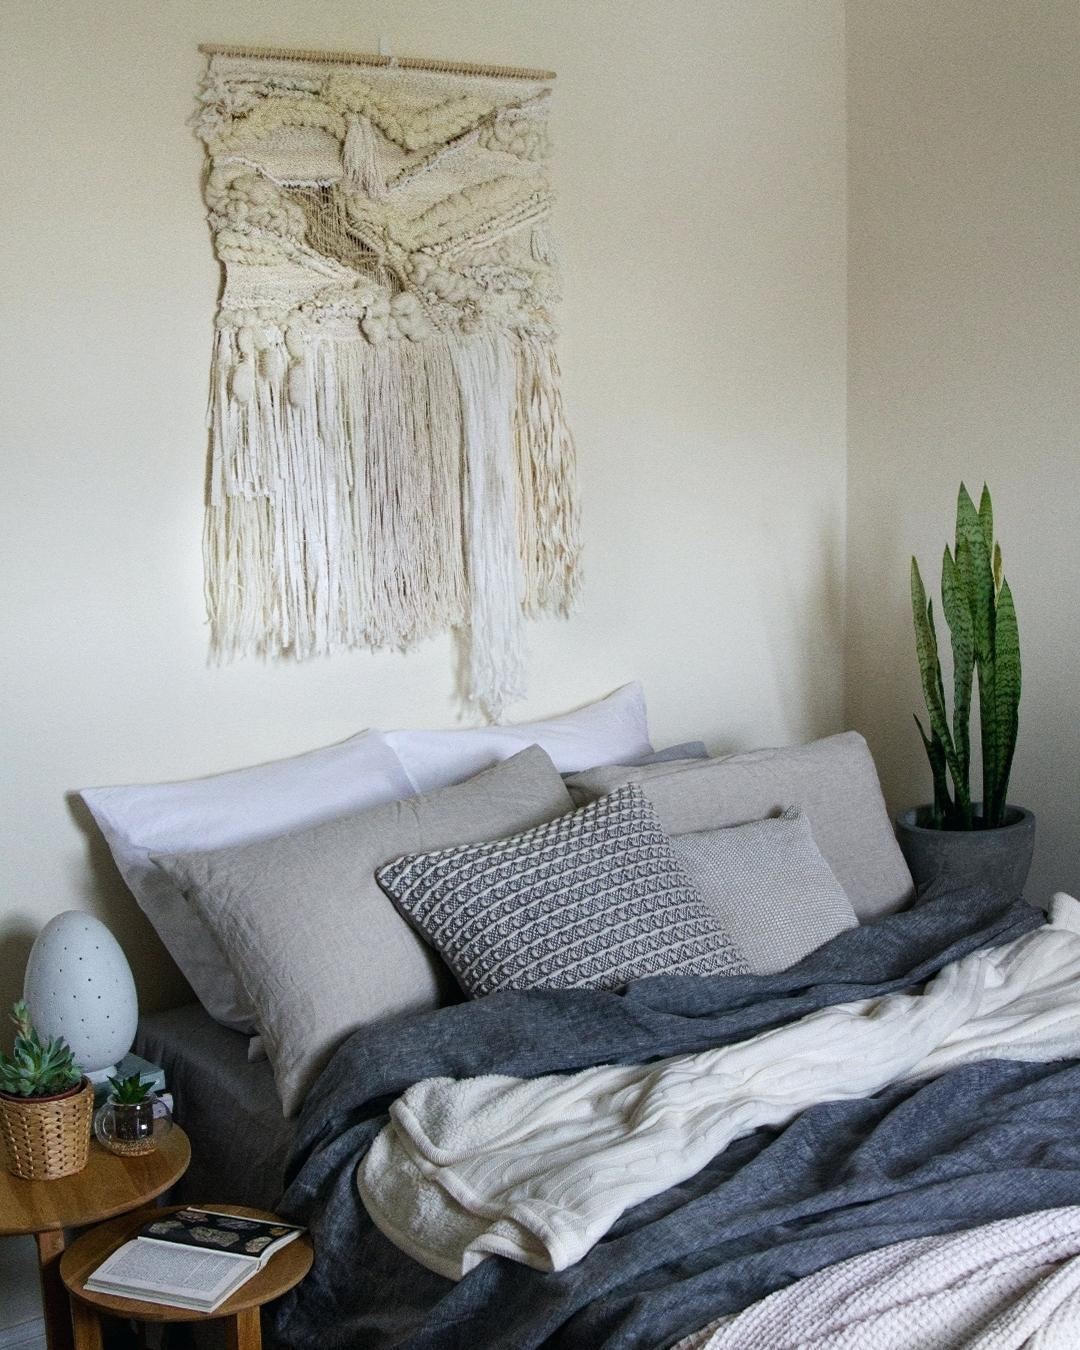 Wall Ideas: Wall Hanging For Bedroom (View 13 of 20)